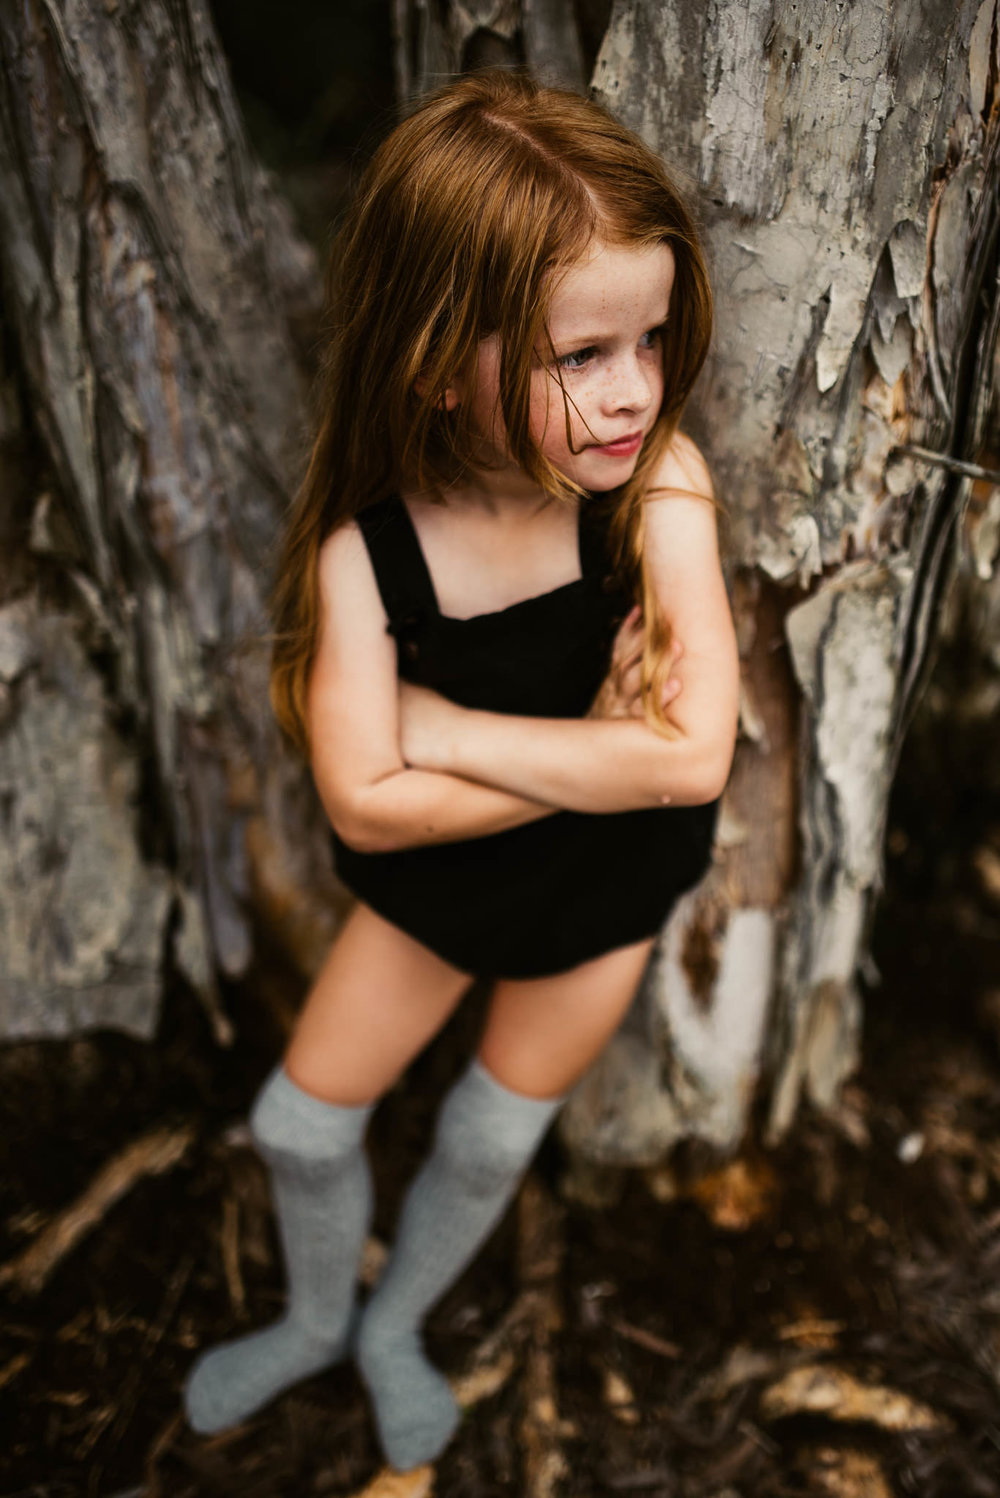 twyla jones photography - treasure coast florida - childrens adventure clothing commercial shoot--34.jpg